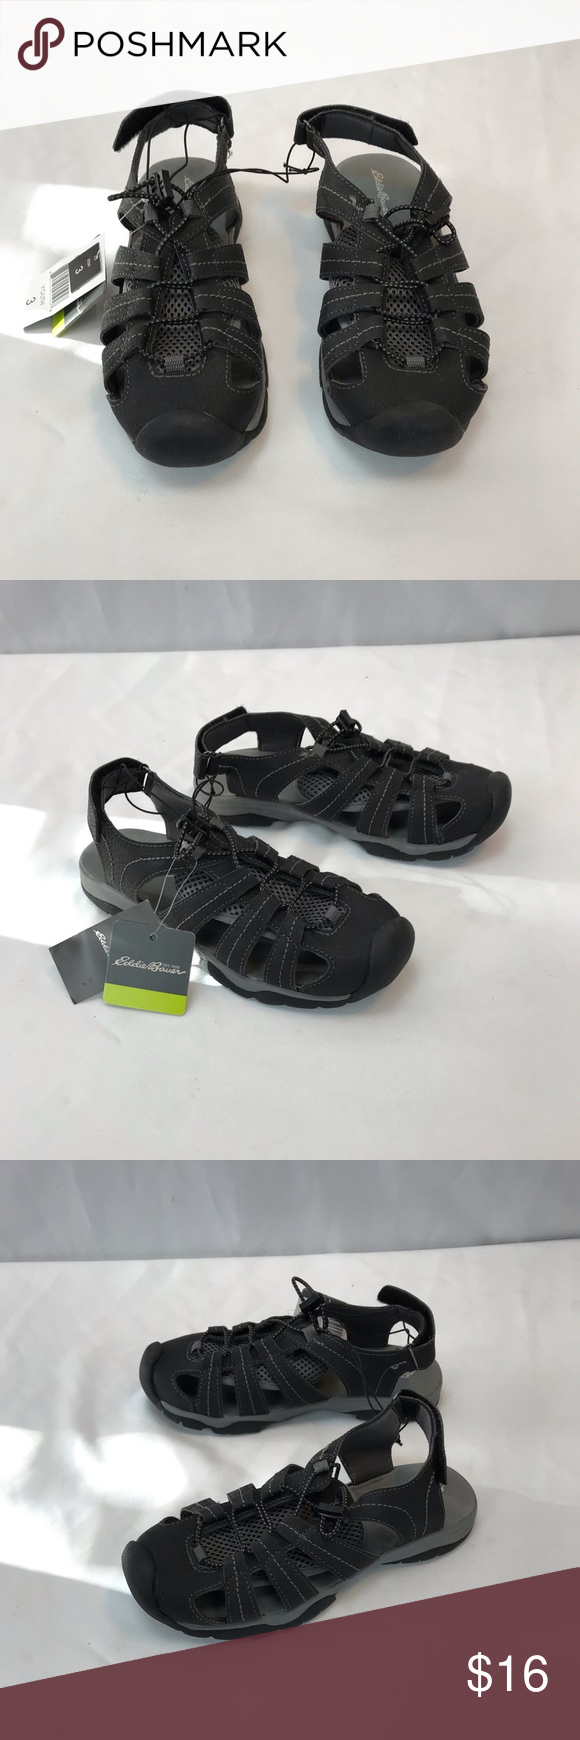 28797e917907 Eddie Bauer youth bump toe sandals Eddie Bauer bump toe sandals Chris Youth  Eddie Bauer Shoes Sandals   Flip Flops